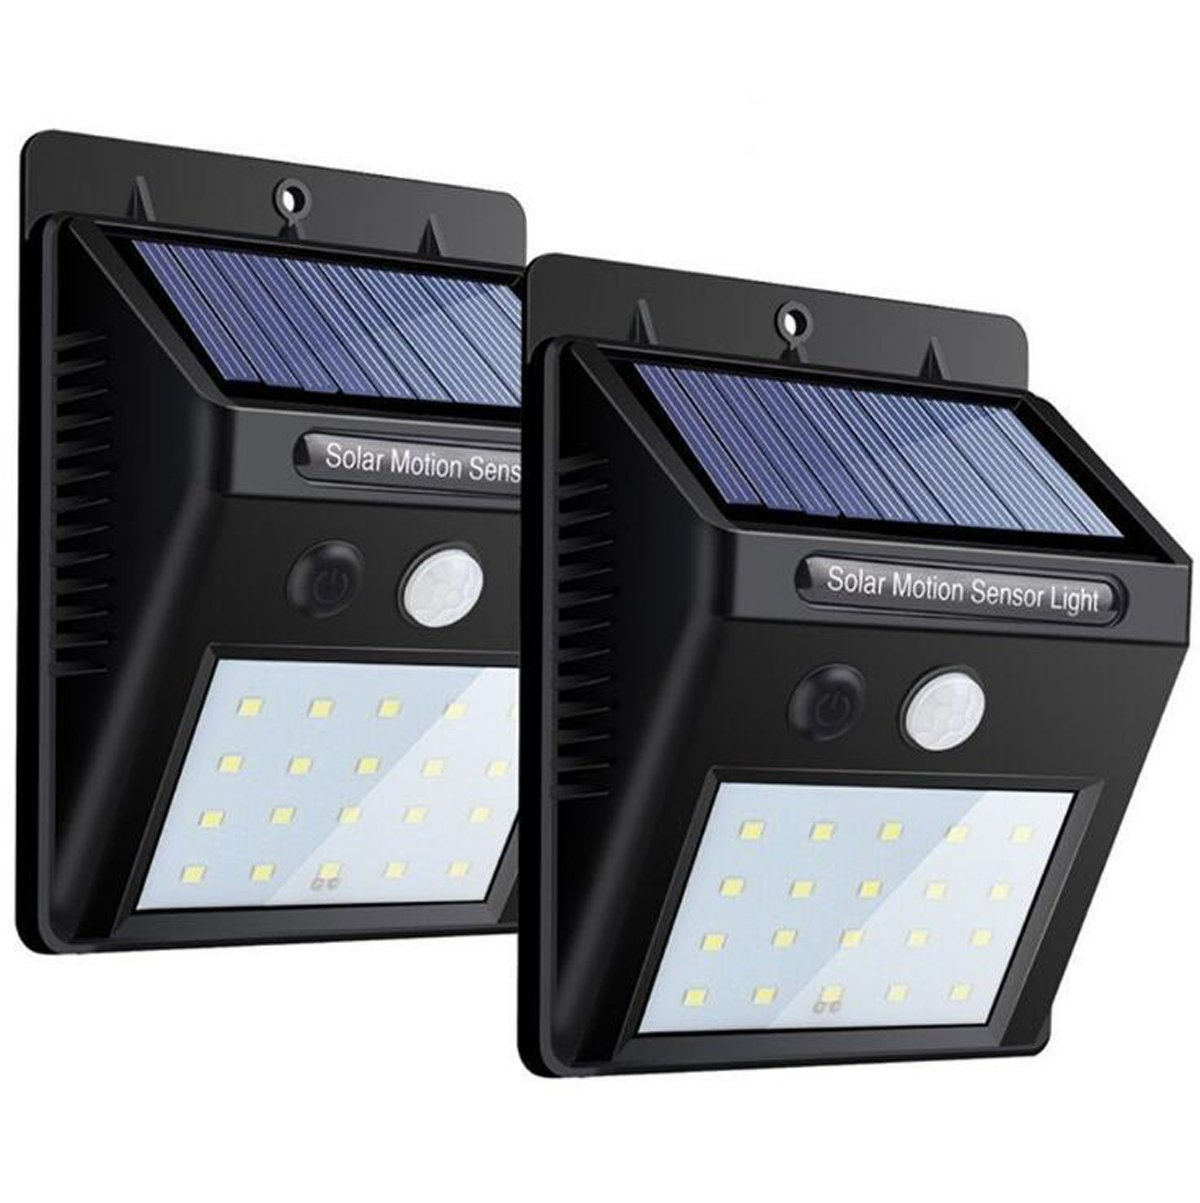 vTopTek 30 LEDs Solar Lights Outdoor, Solar Powered Waterproof and Security Light with PIR Motion Sensor Solar for Garden, Patio, Path Lighting (30Light 2Pack)